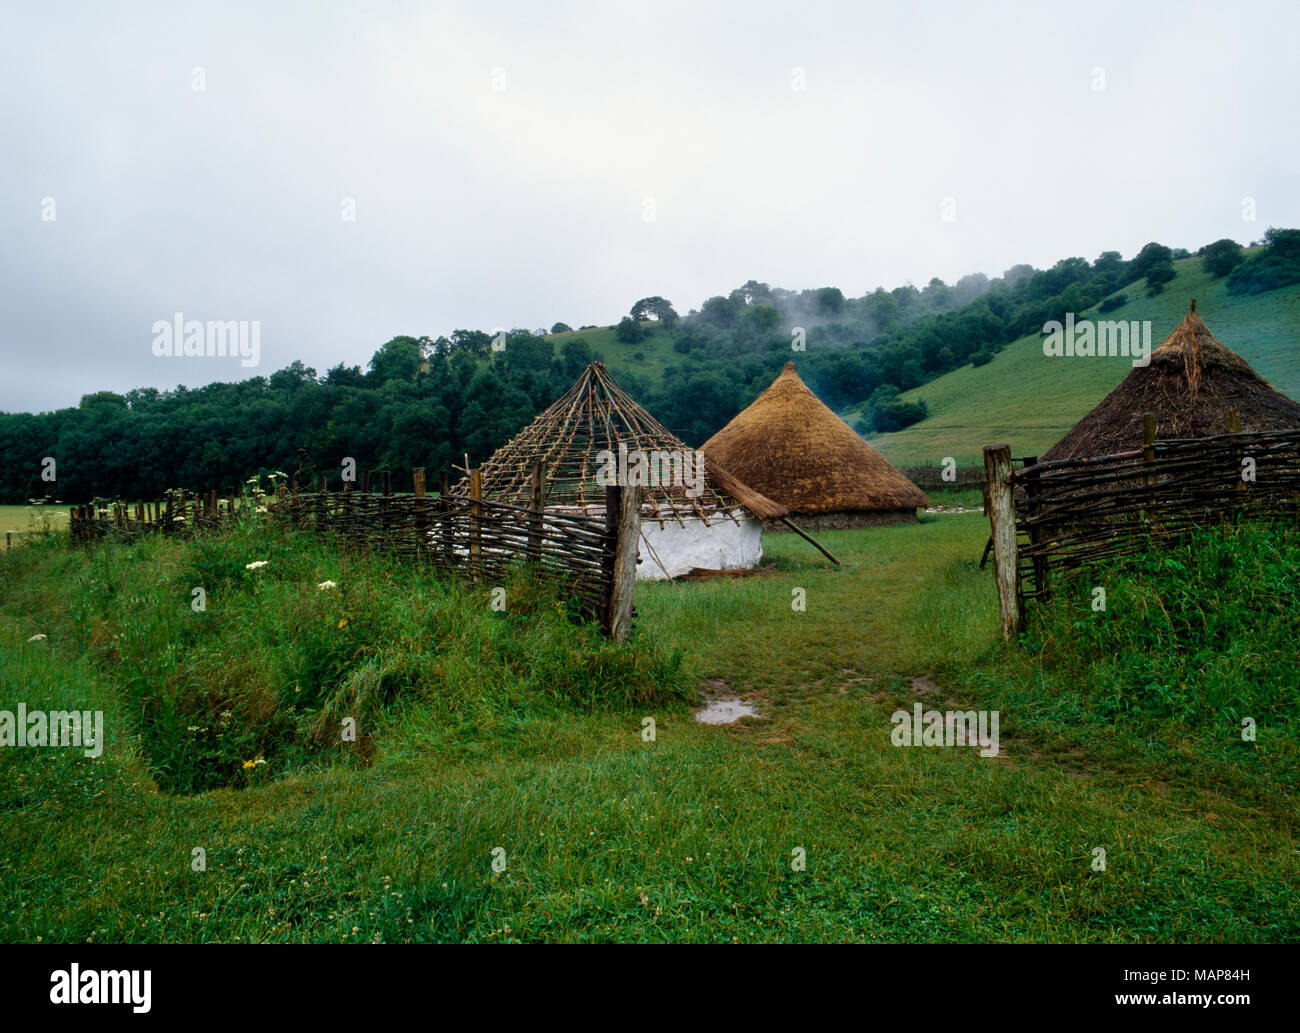 Archaeological reconstructions of Iron Age roundhouses seen through the NE entrance of a ditched and fenced enclosure at Butser Ancient Farm, UK. - Stock Image